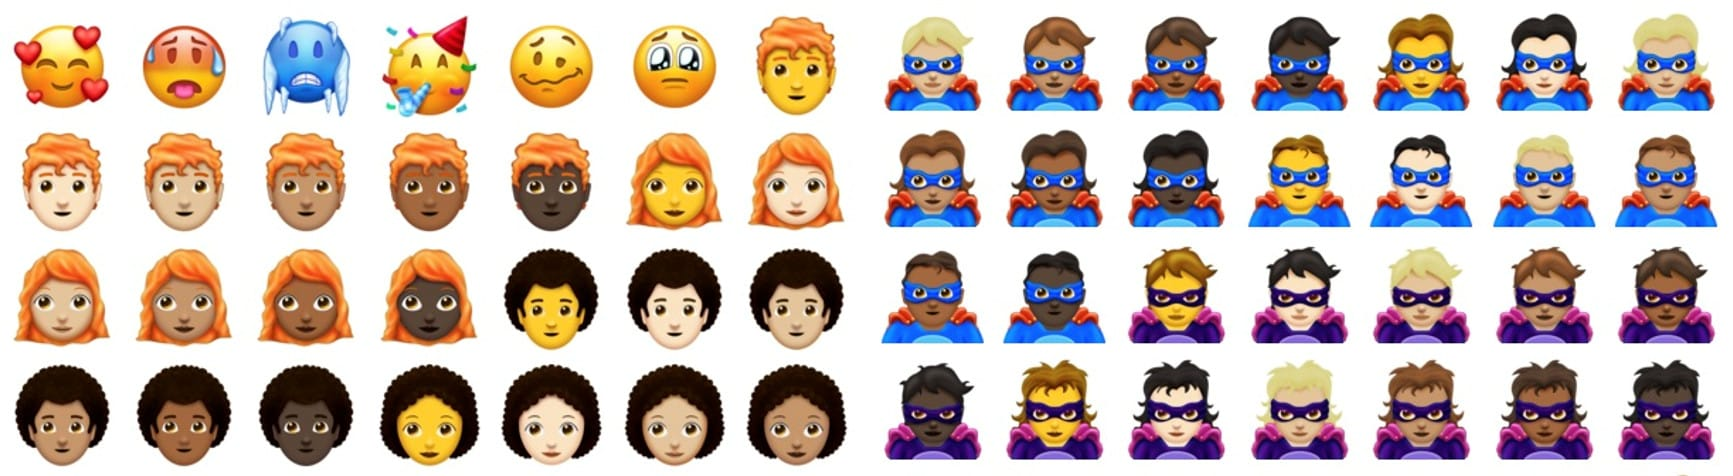 157 new emoji are coming in 2018, including redheads and.